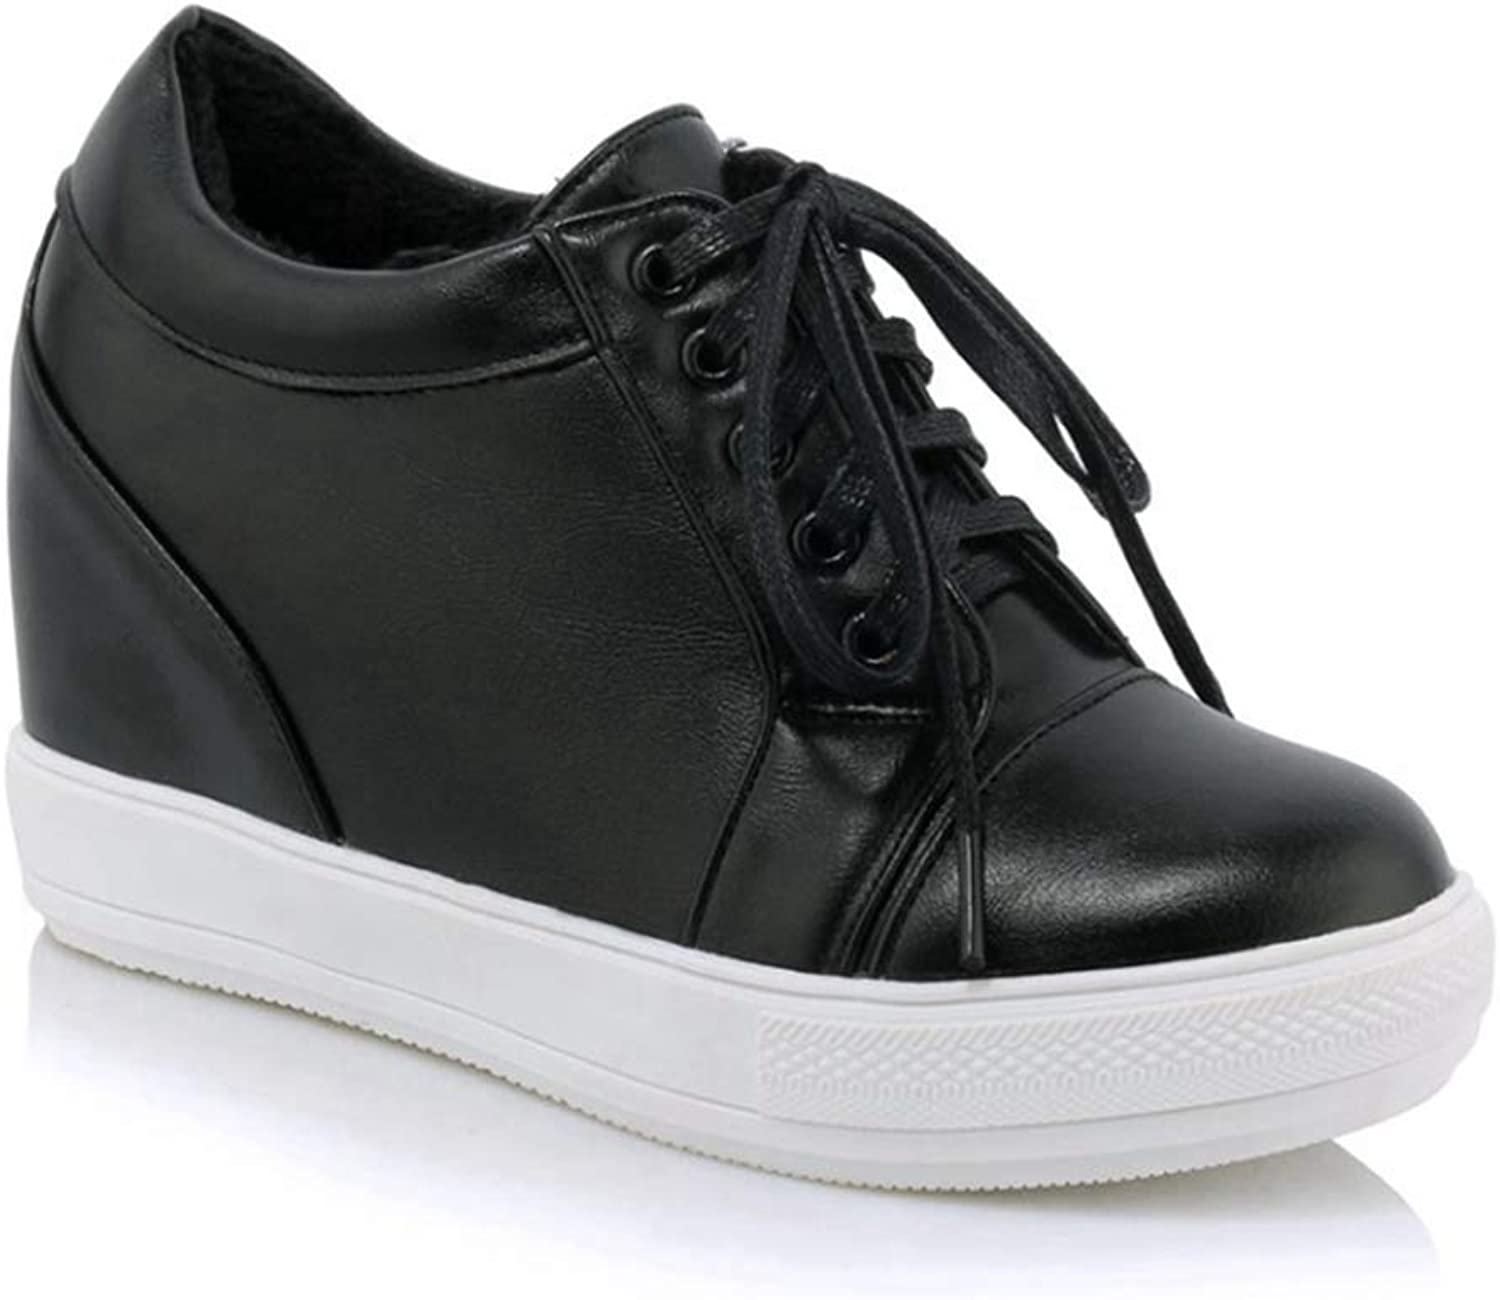 U-MAC Wedge Sneakers Athletic Walking shoes for Womens Low Cut Comfortable Non Skid Female Lady Plus Size